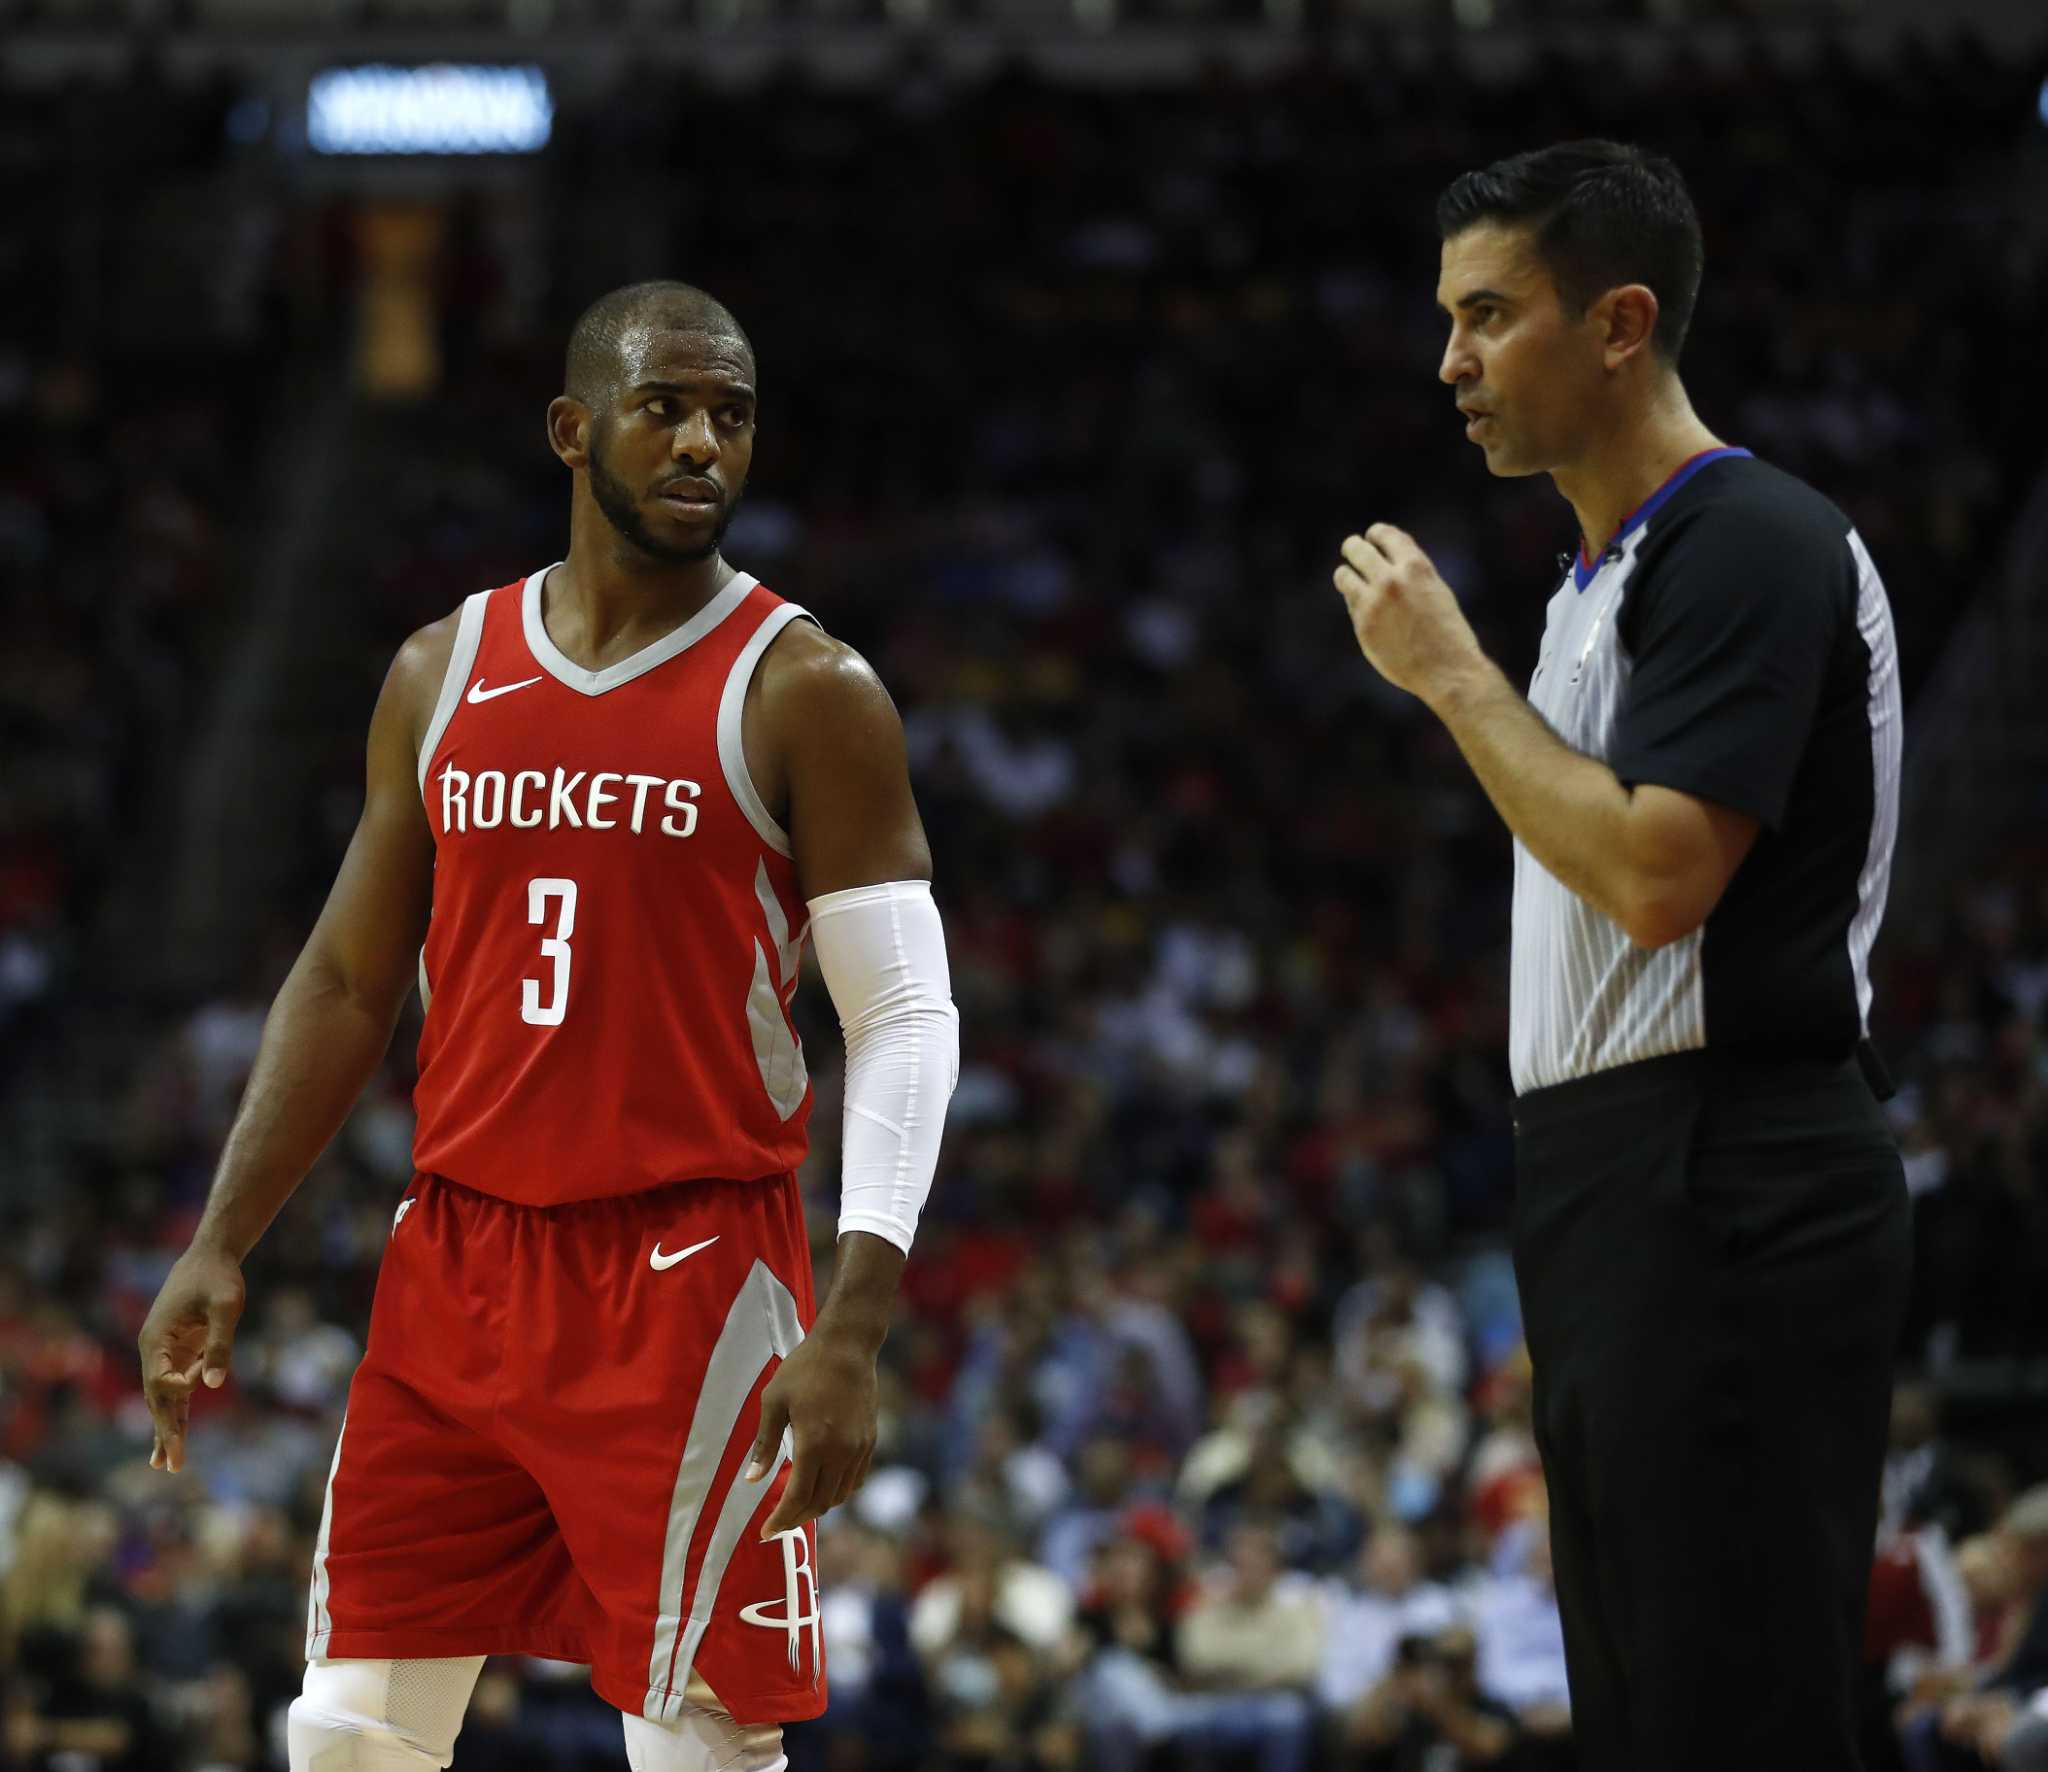 Houston Rockets Record 2018: Rockets' Chris Paul Left Off 2018 NBA All-Star Roster